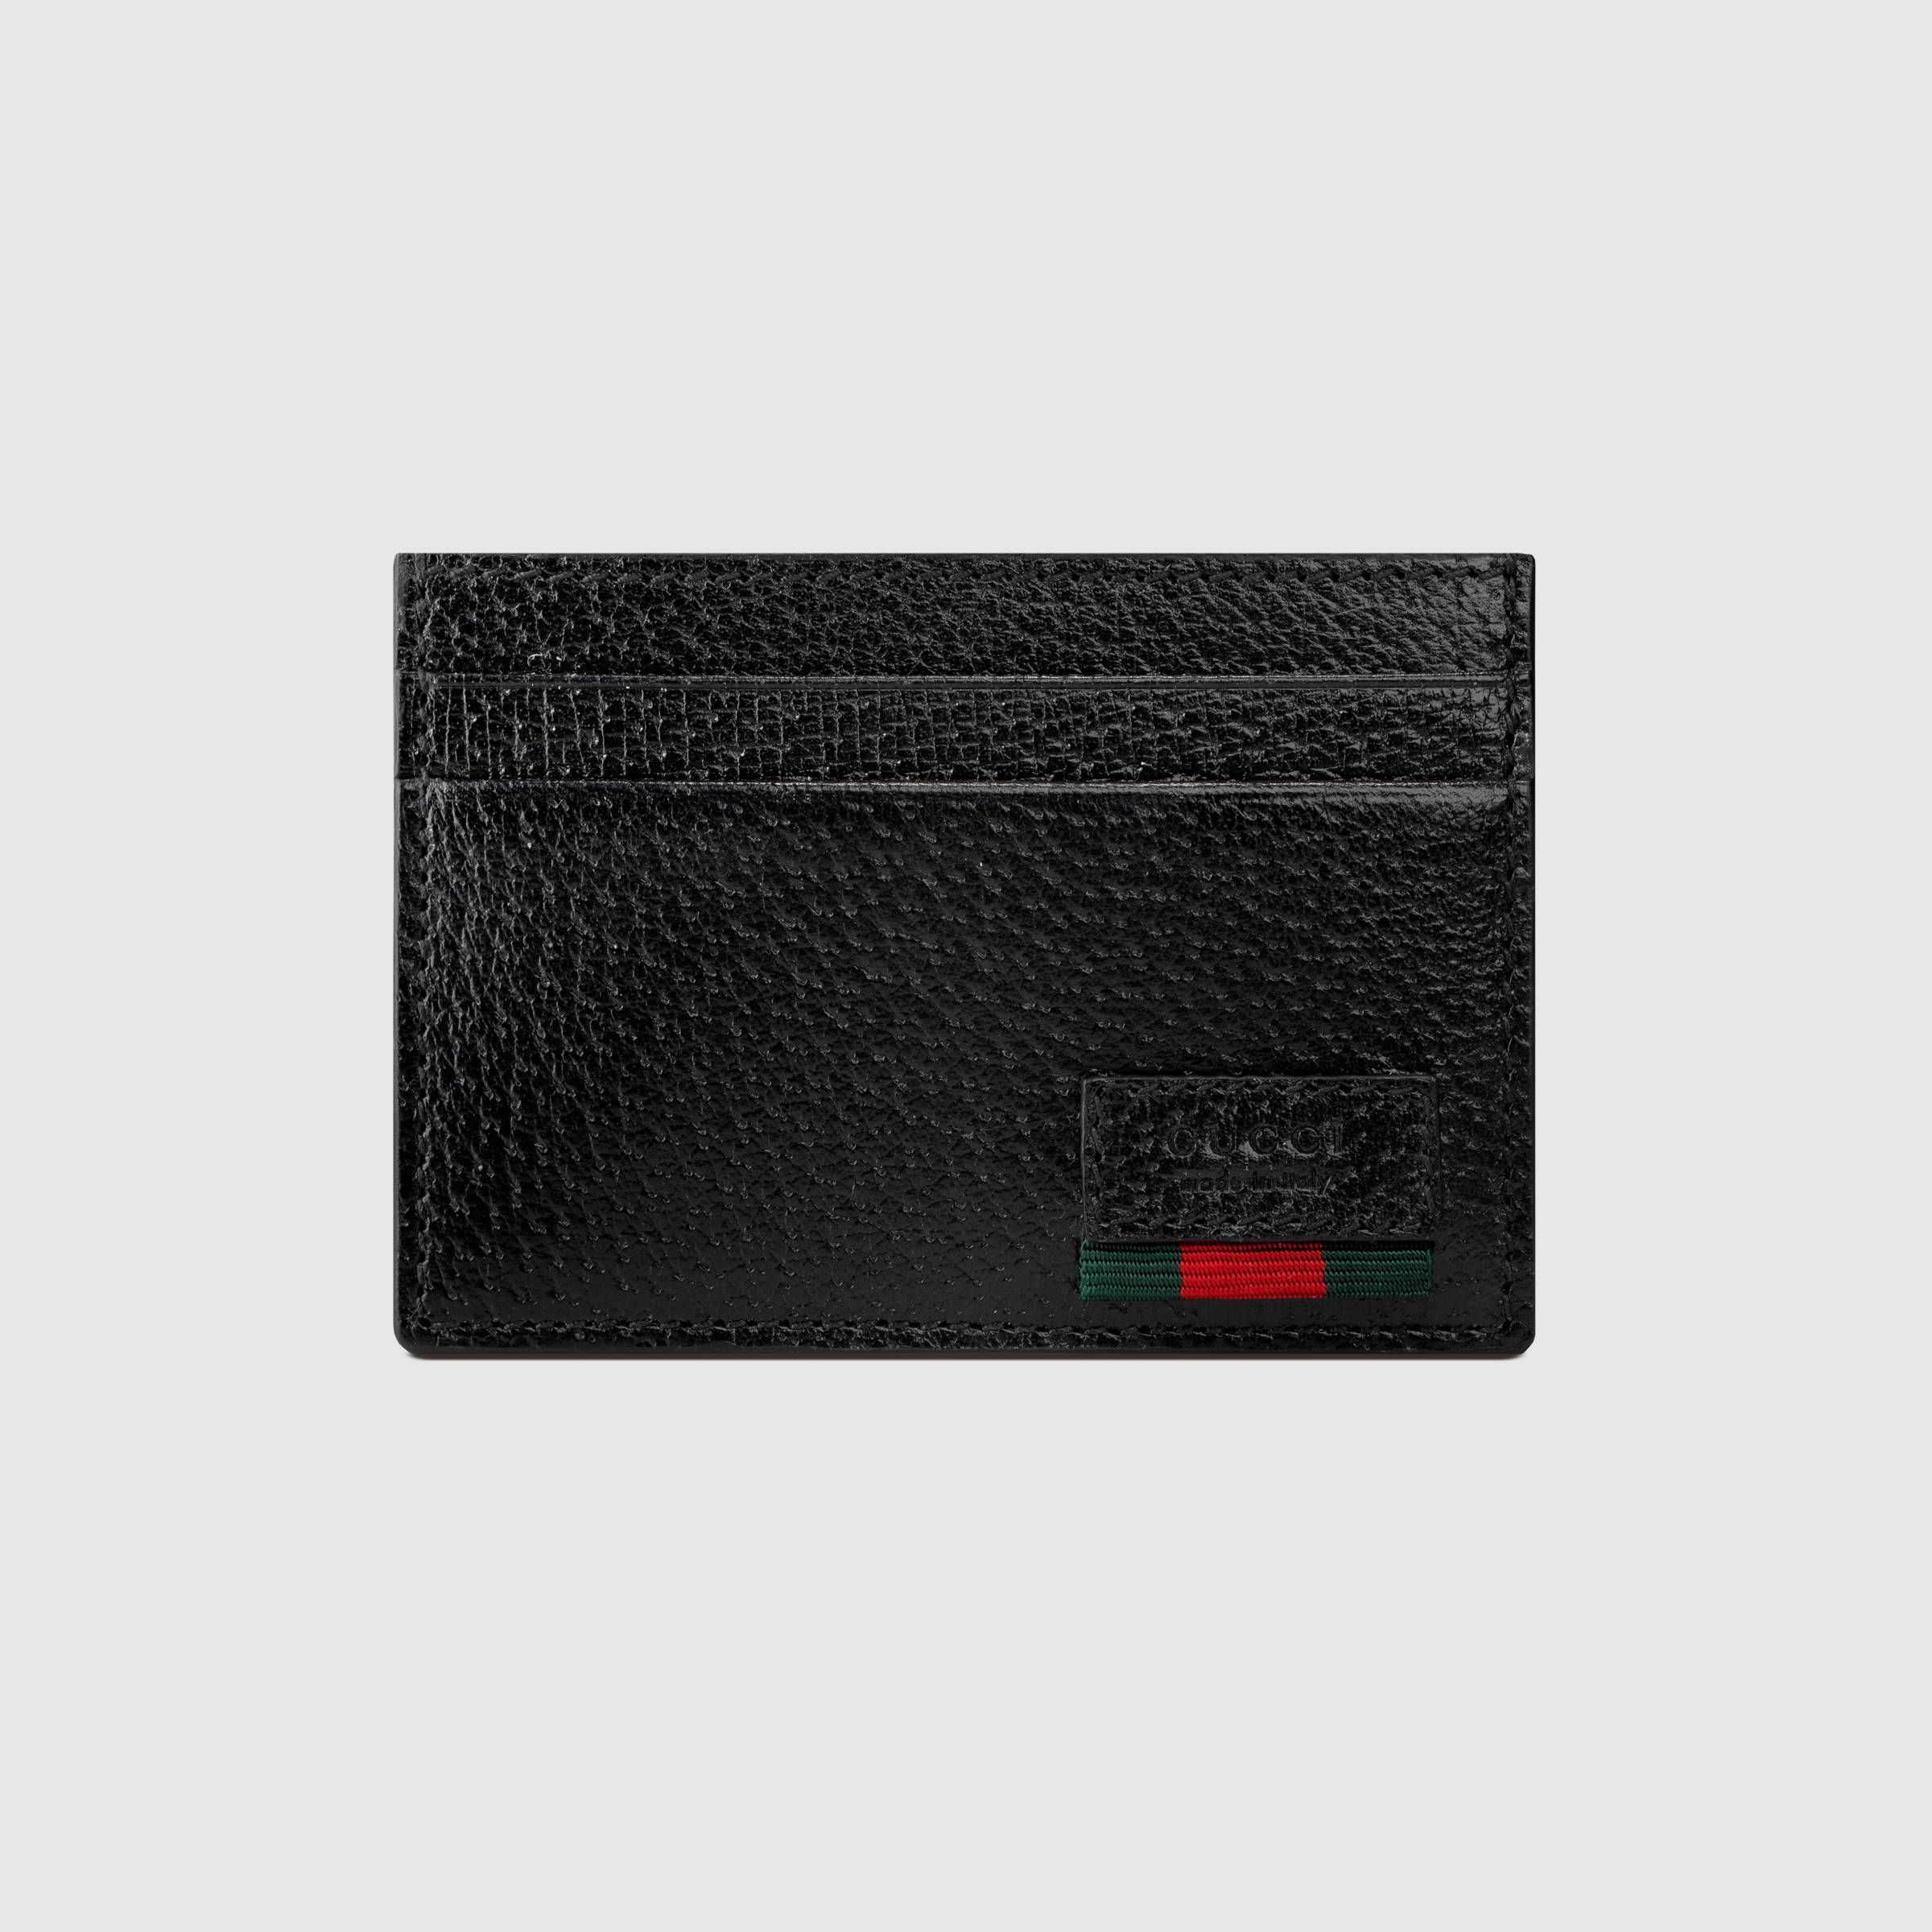 41d8776514de24 Leather money clip with Web | Accessories | Money clip wallet, Gucci ...